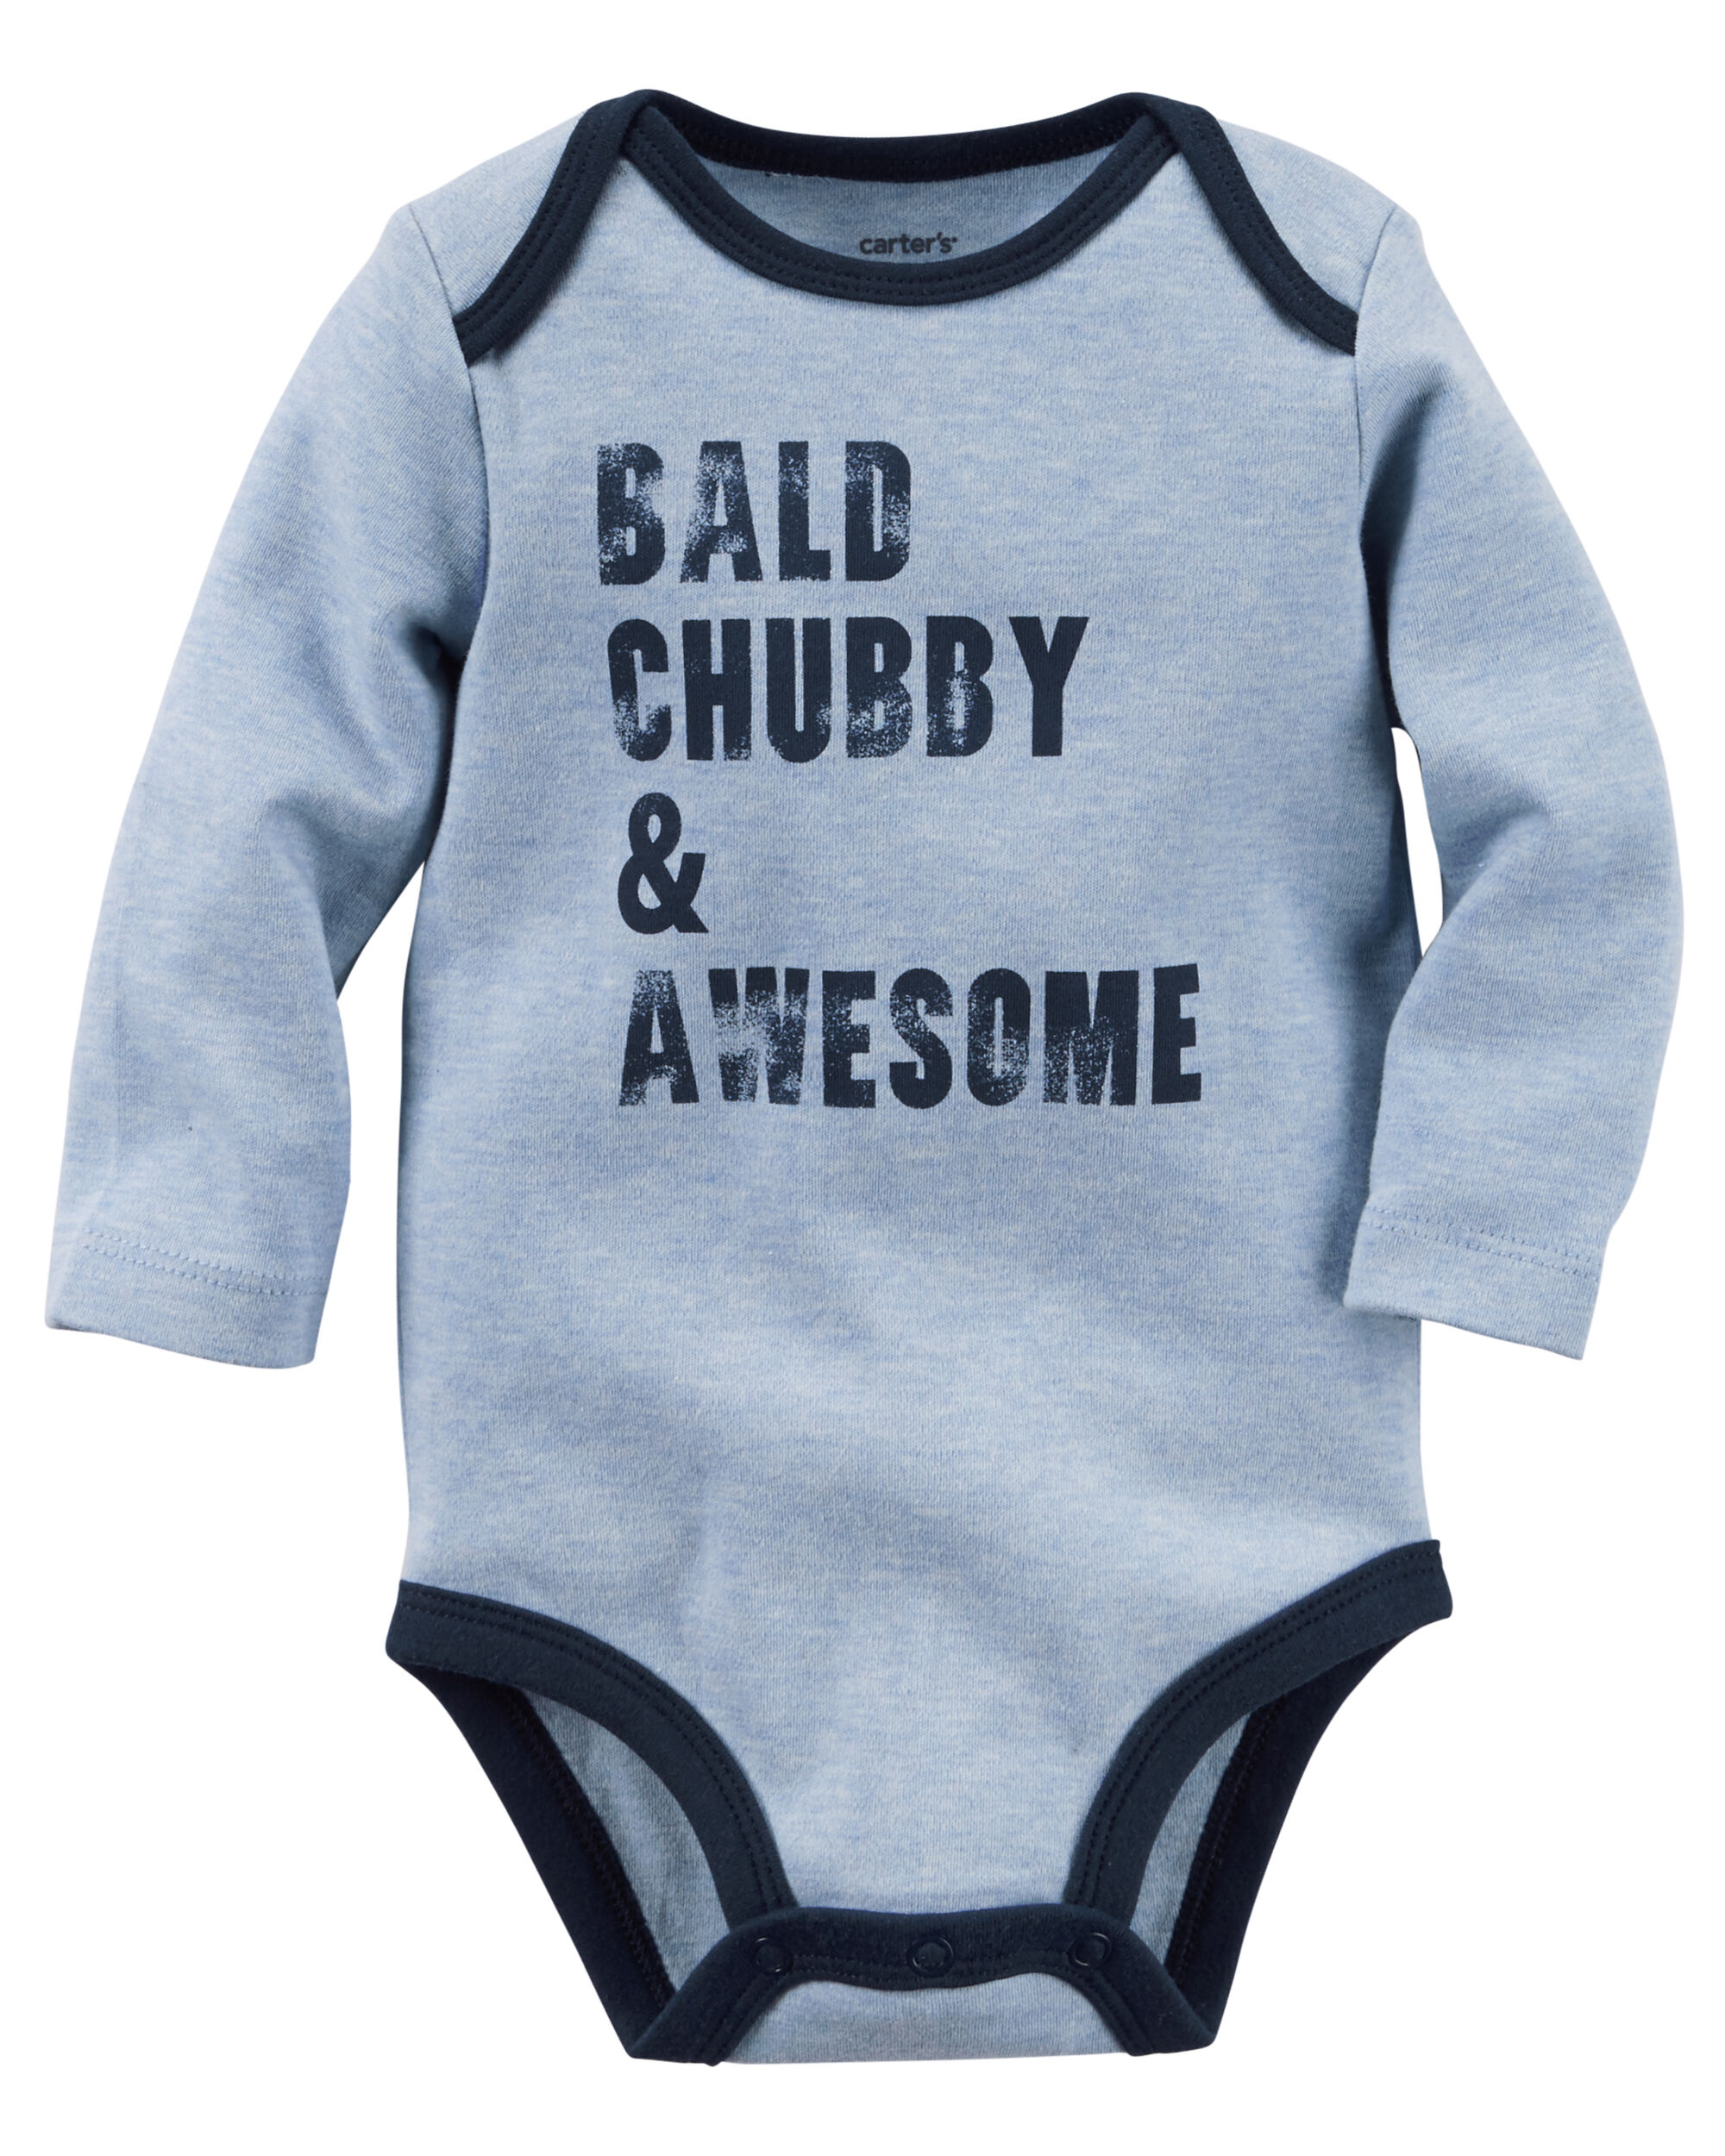 Bald Chubby & Awesome Collectible Bodysuit